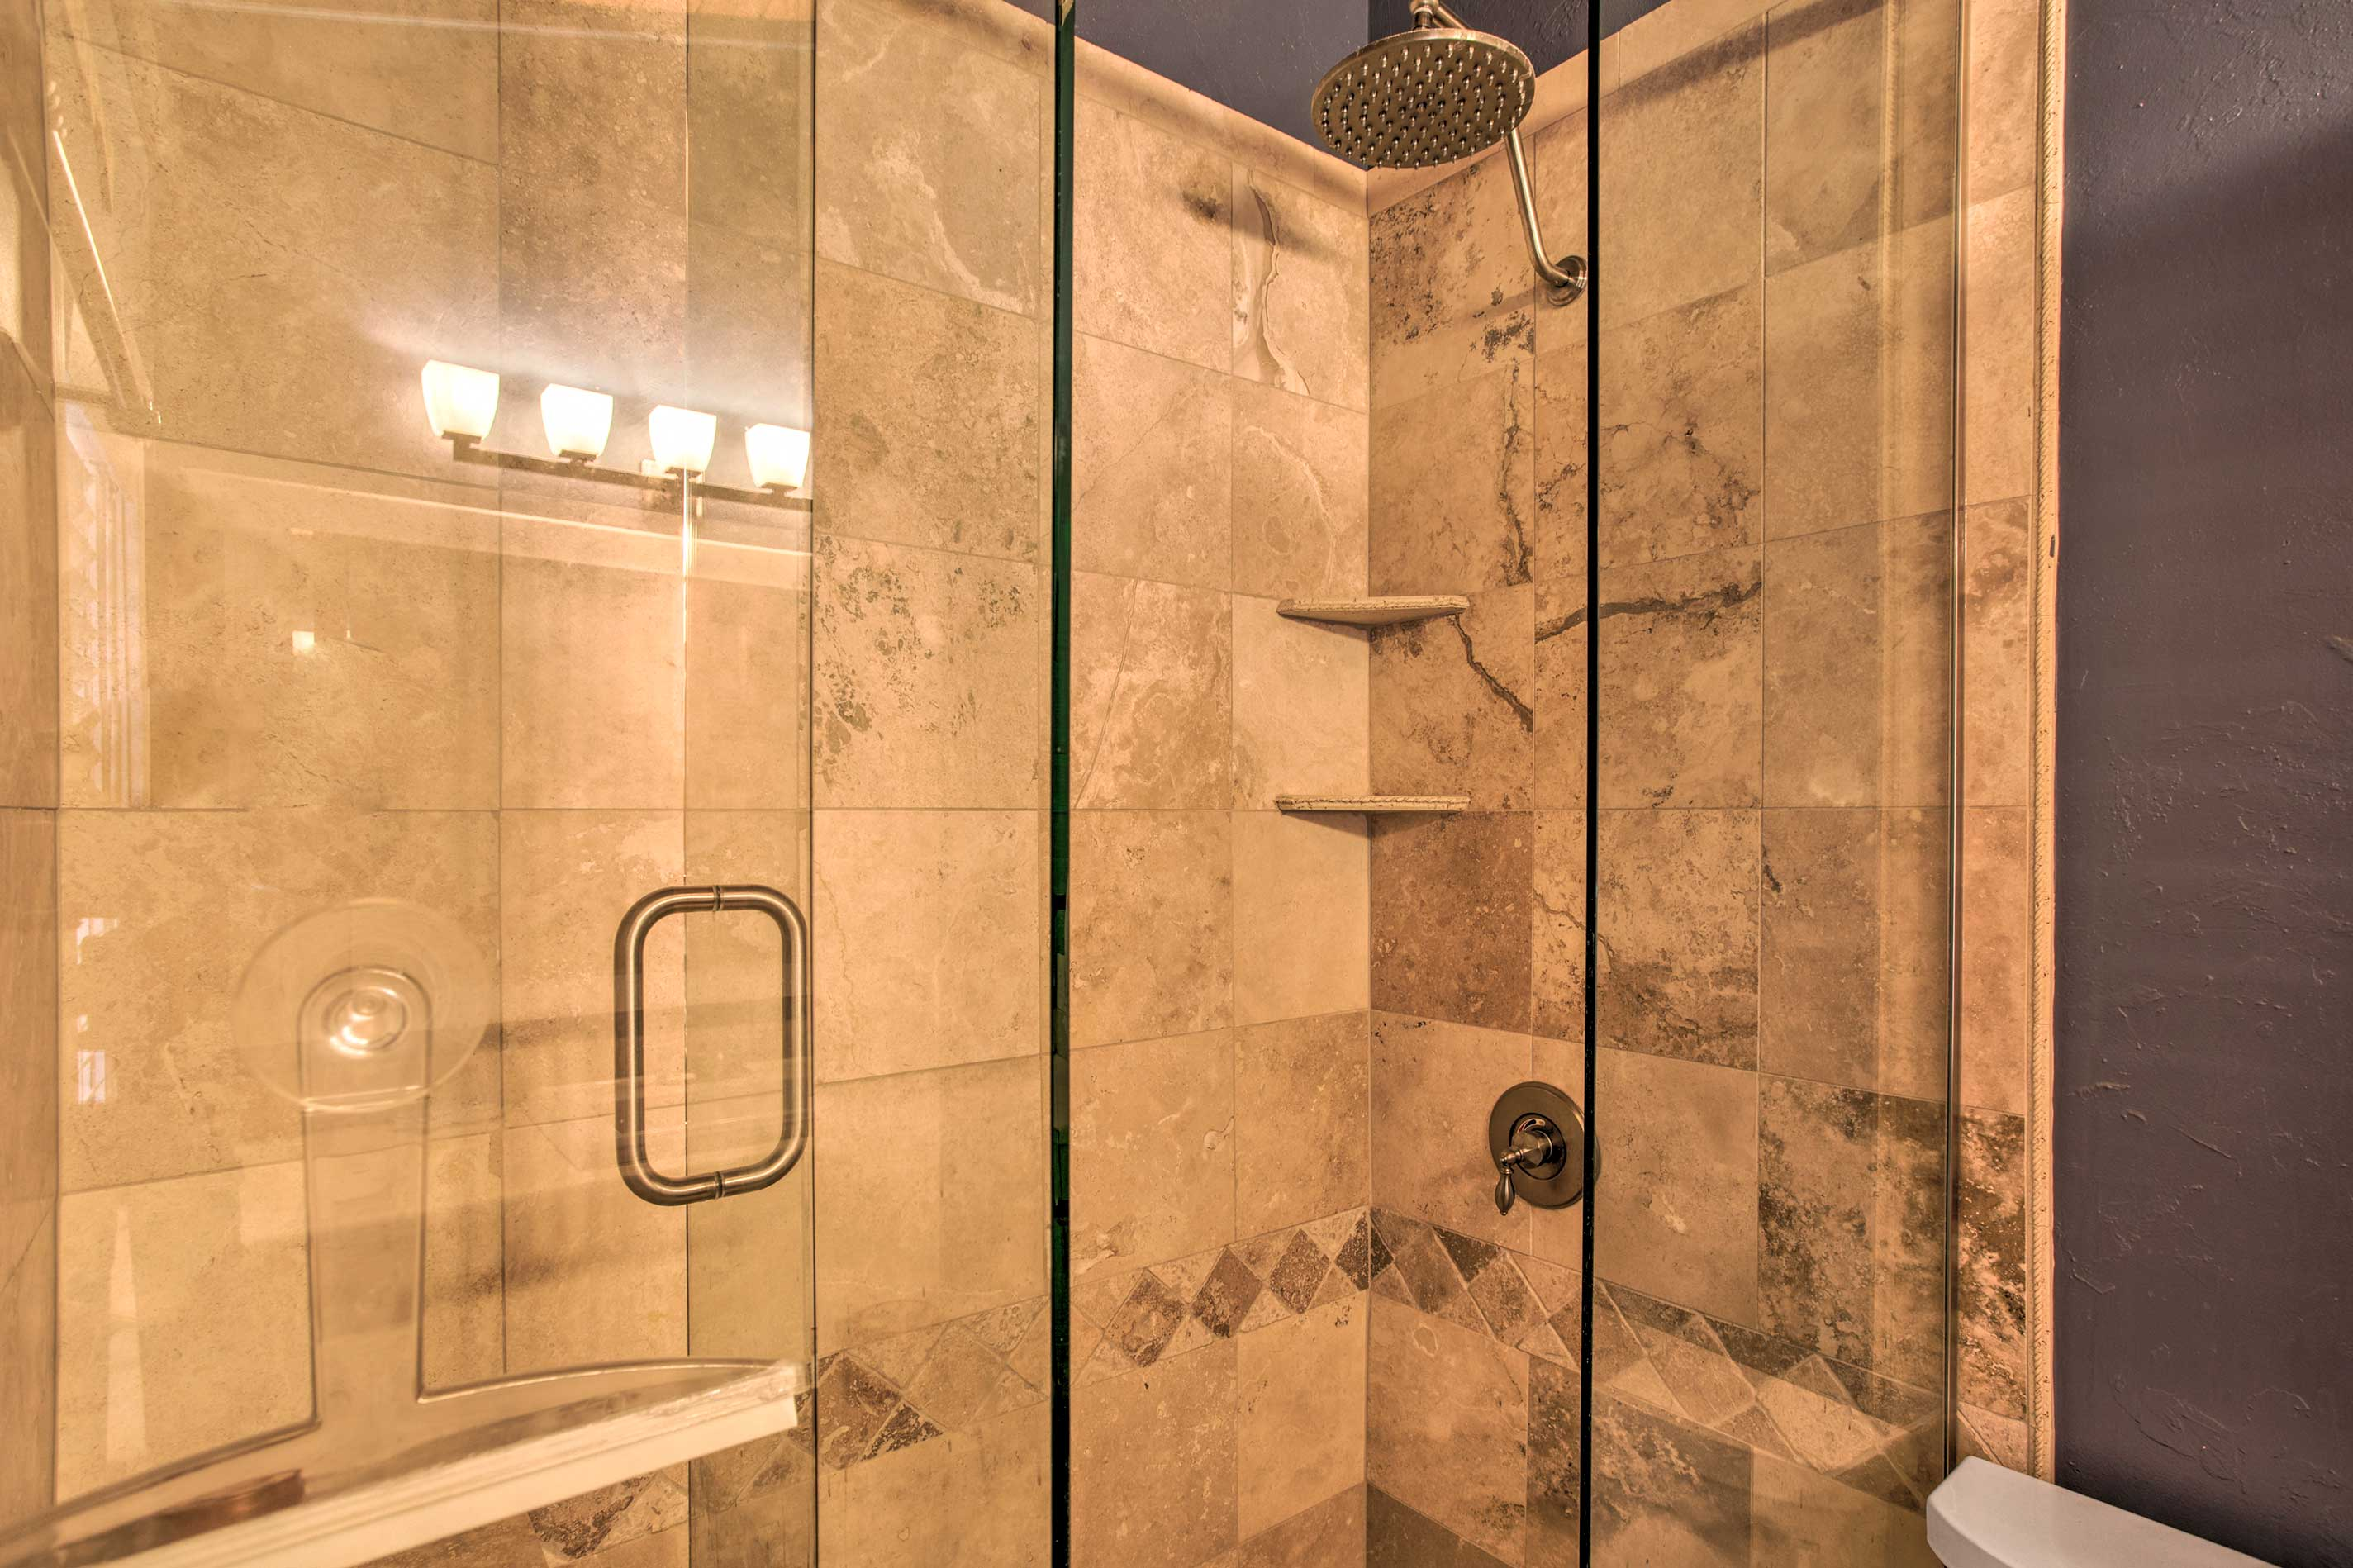 Rinse off in the walk-in shower before bed.